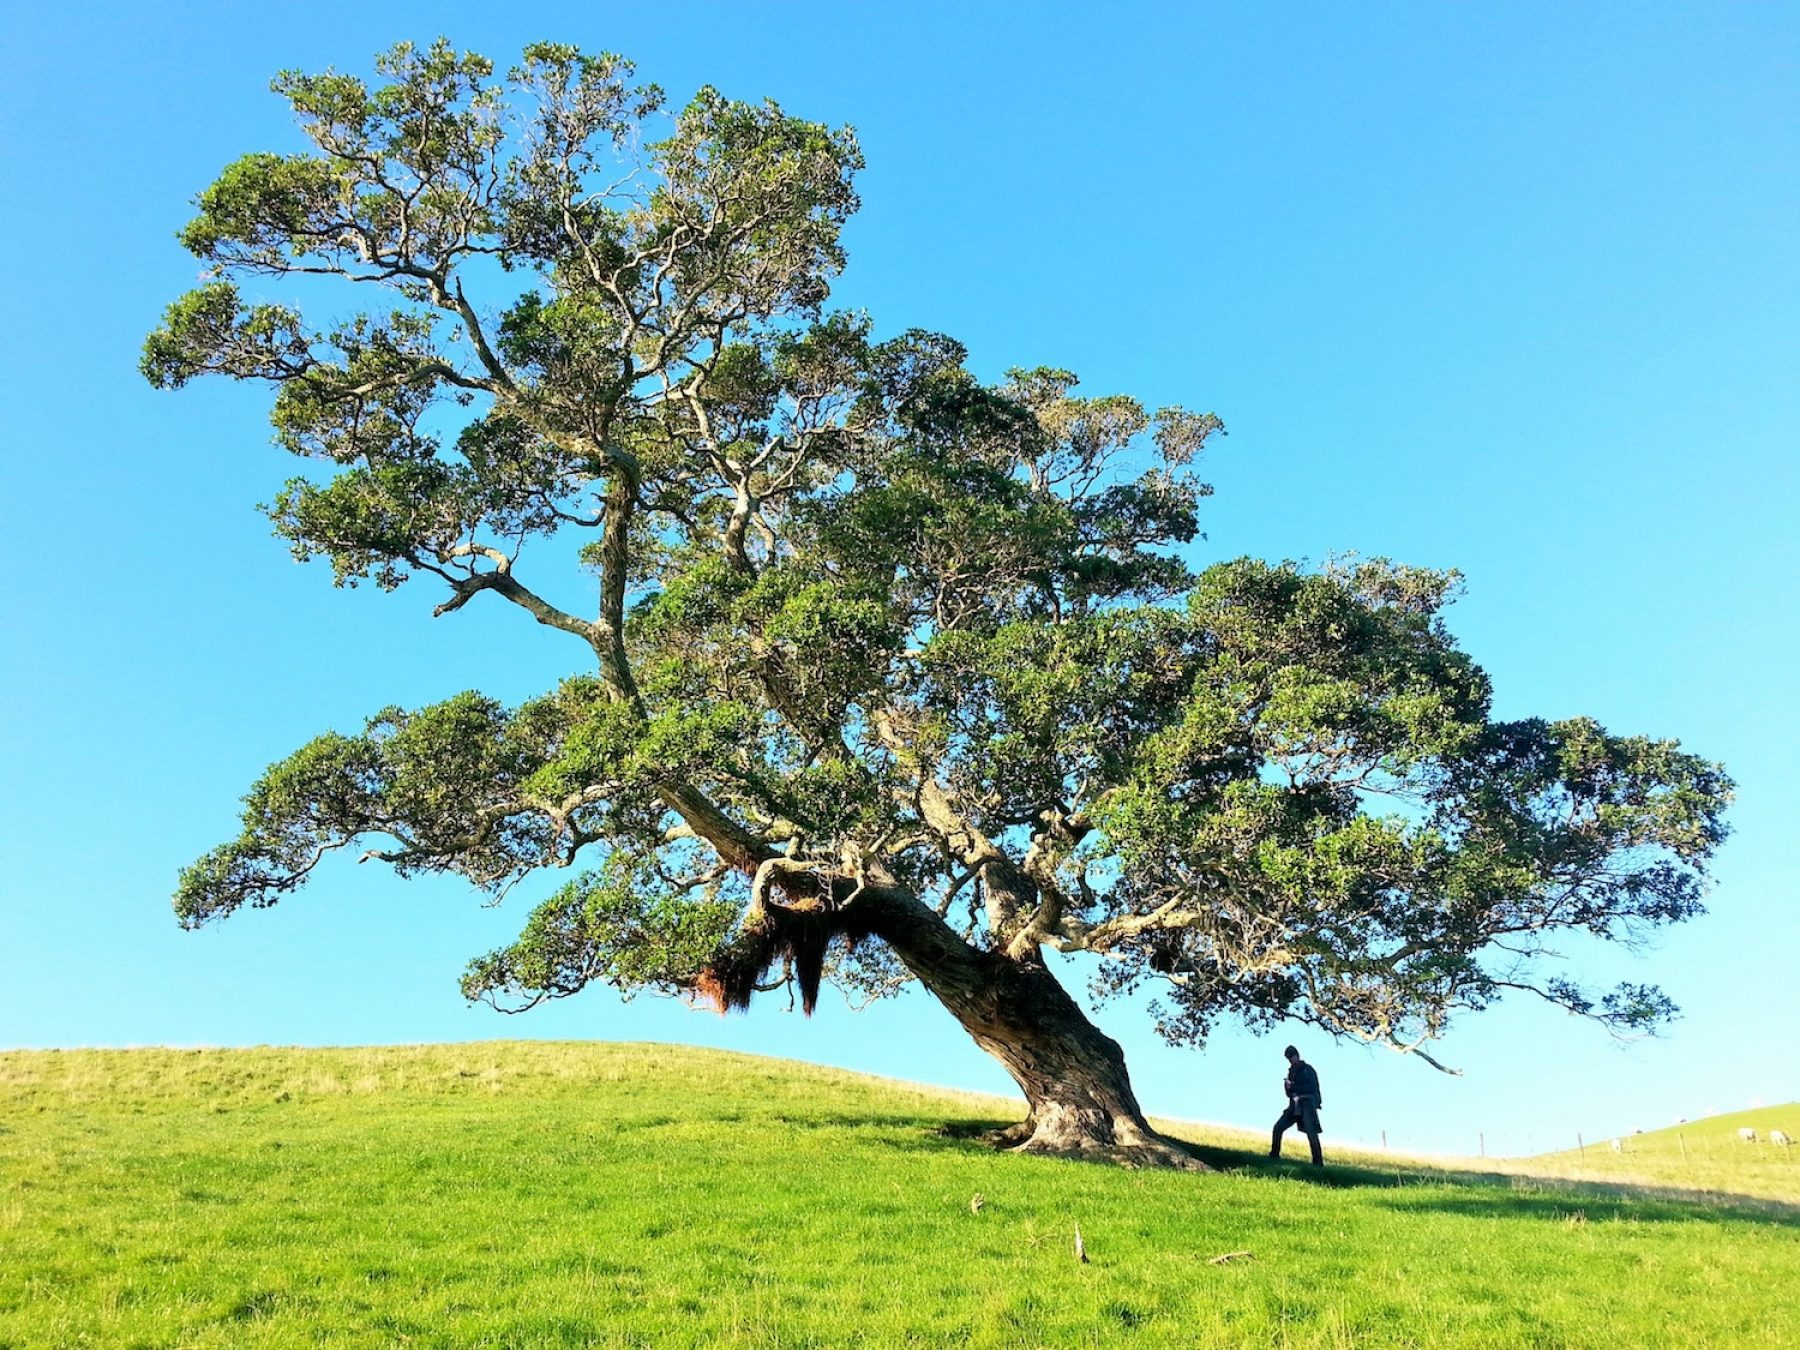 Image for Spare a thought for trees this Valentine's Day, urges writing project